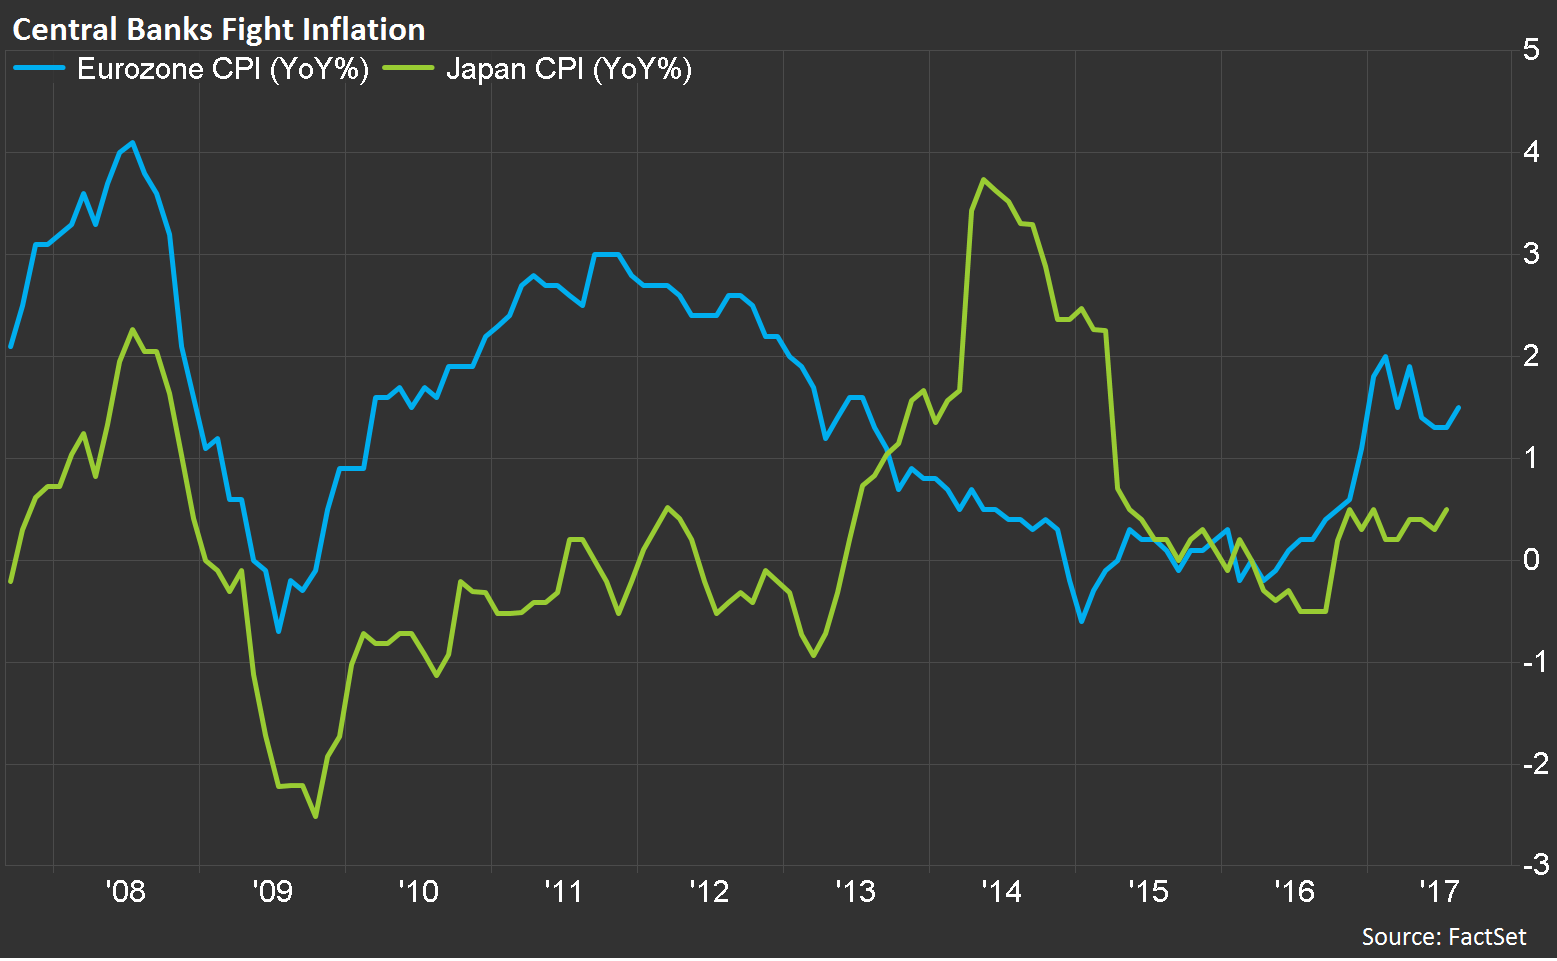 1 Japan has struggled to find any sustained period of growth, while the European Central Bank (ECB) has been desperately fighting deflation